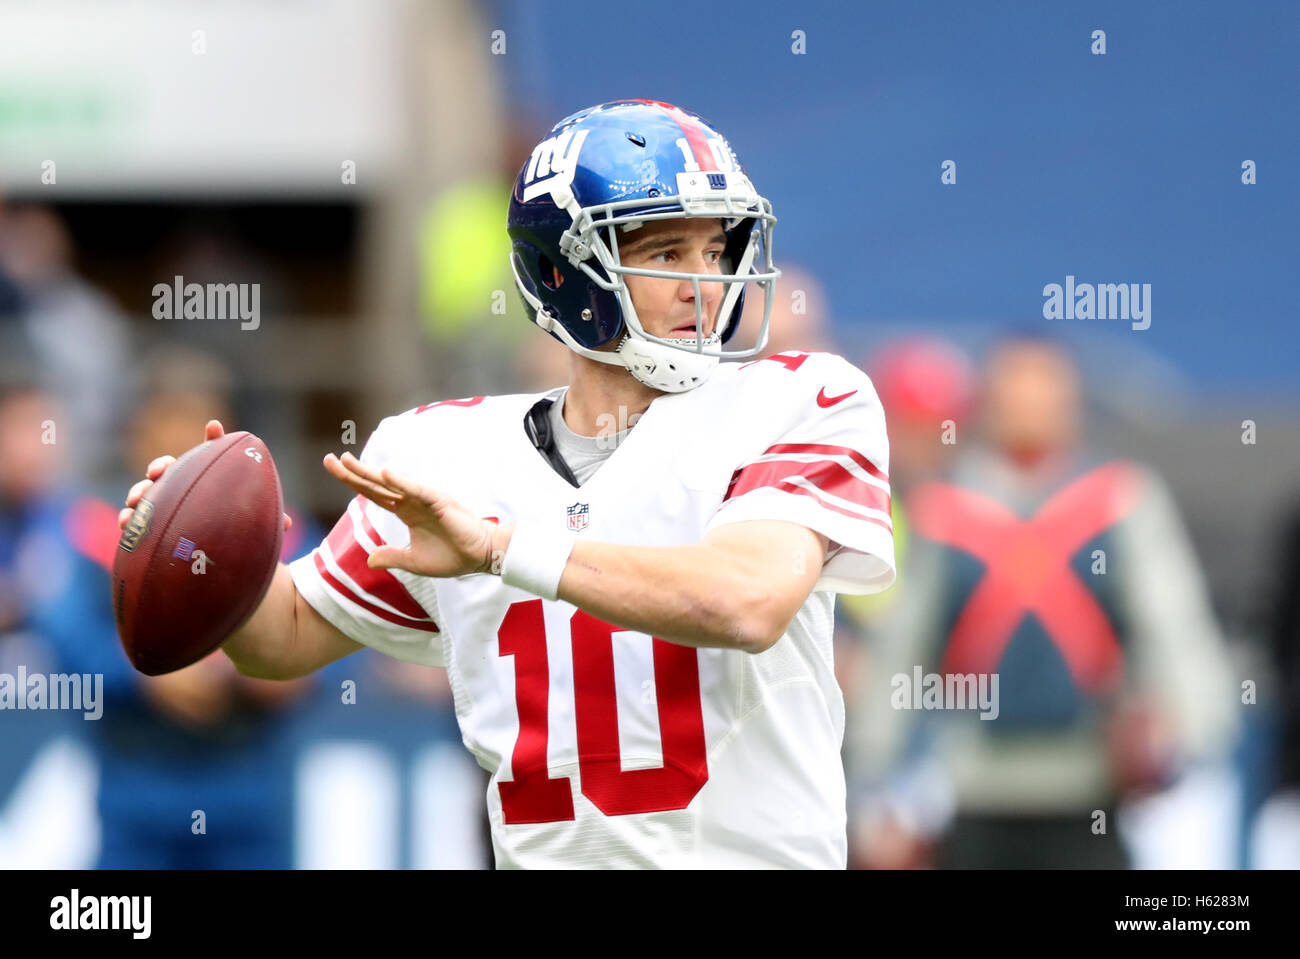 New York Giants Eli Manning au cours de la NFL International Series match à Twickenham, Londres. Photo Stock